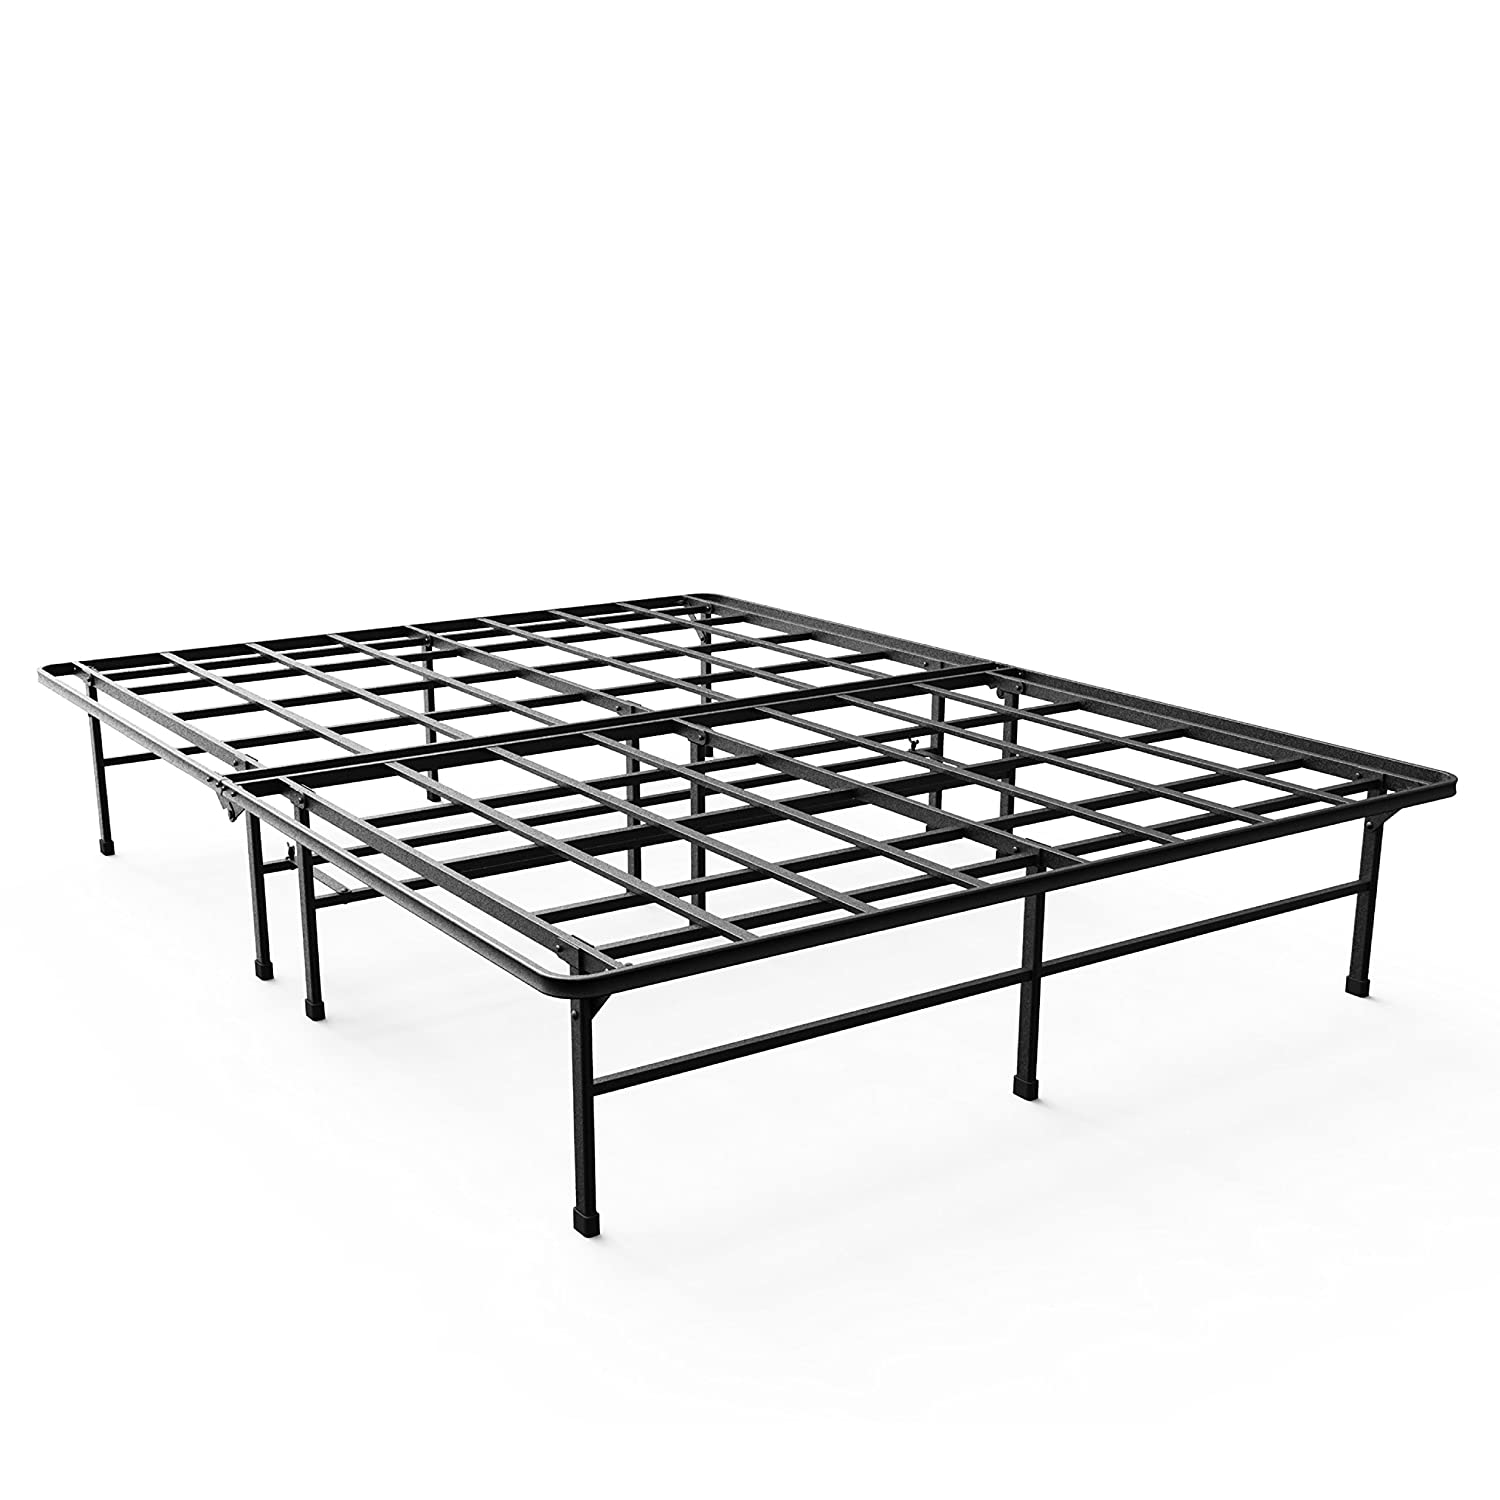 amazoncom zinus 14 inch elite smartbase mattress foundation for big u0026 tall extra strong support platform bed frame box spring replacement sturdy